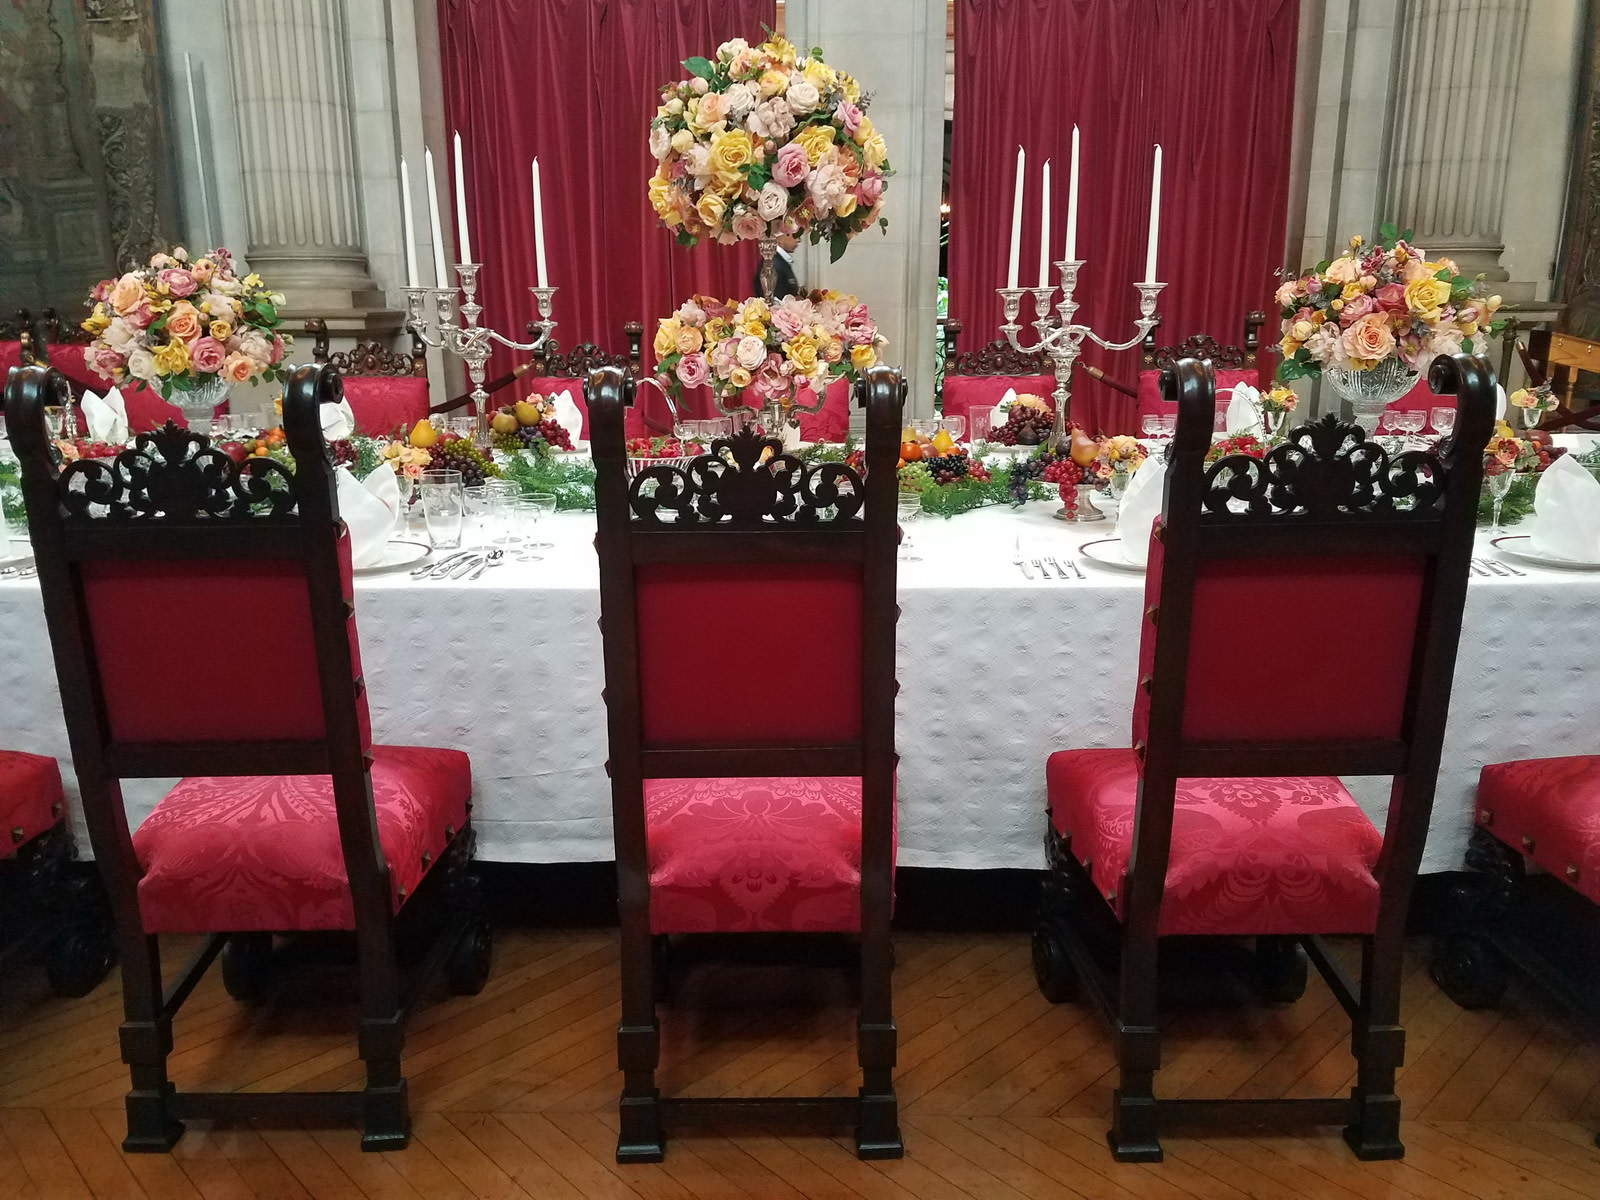 Biltmore banquet room table